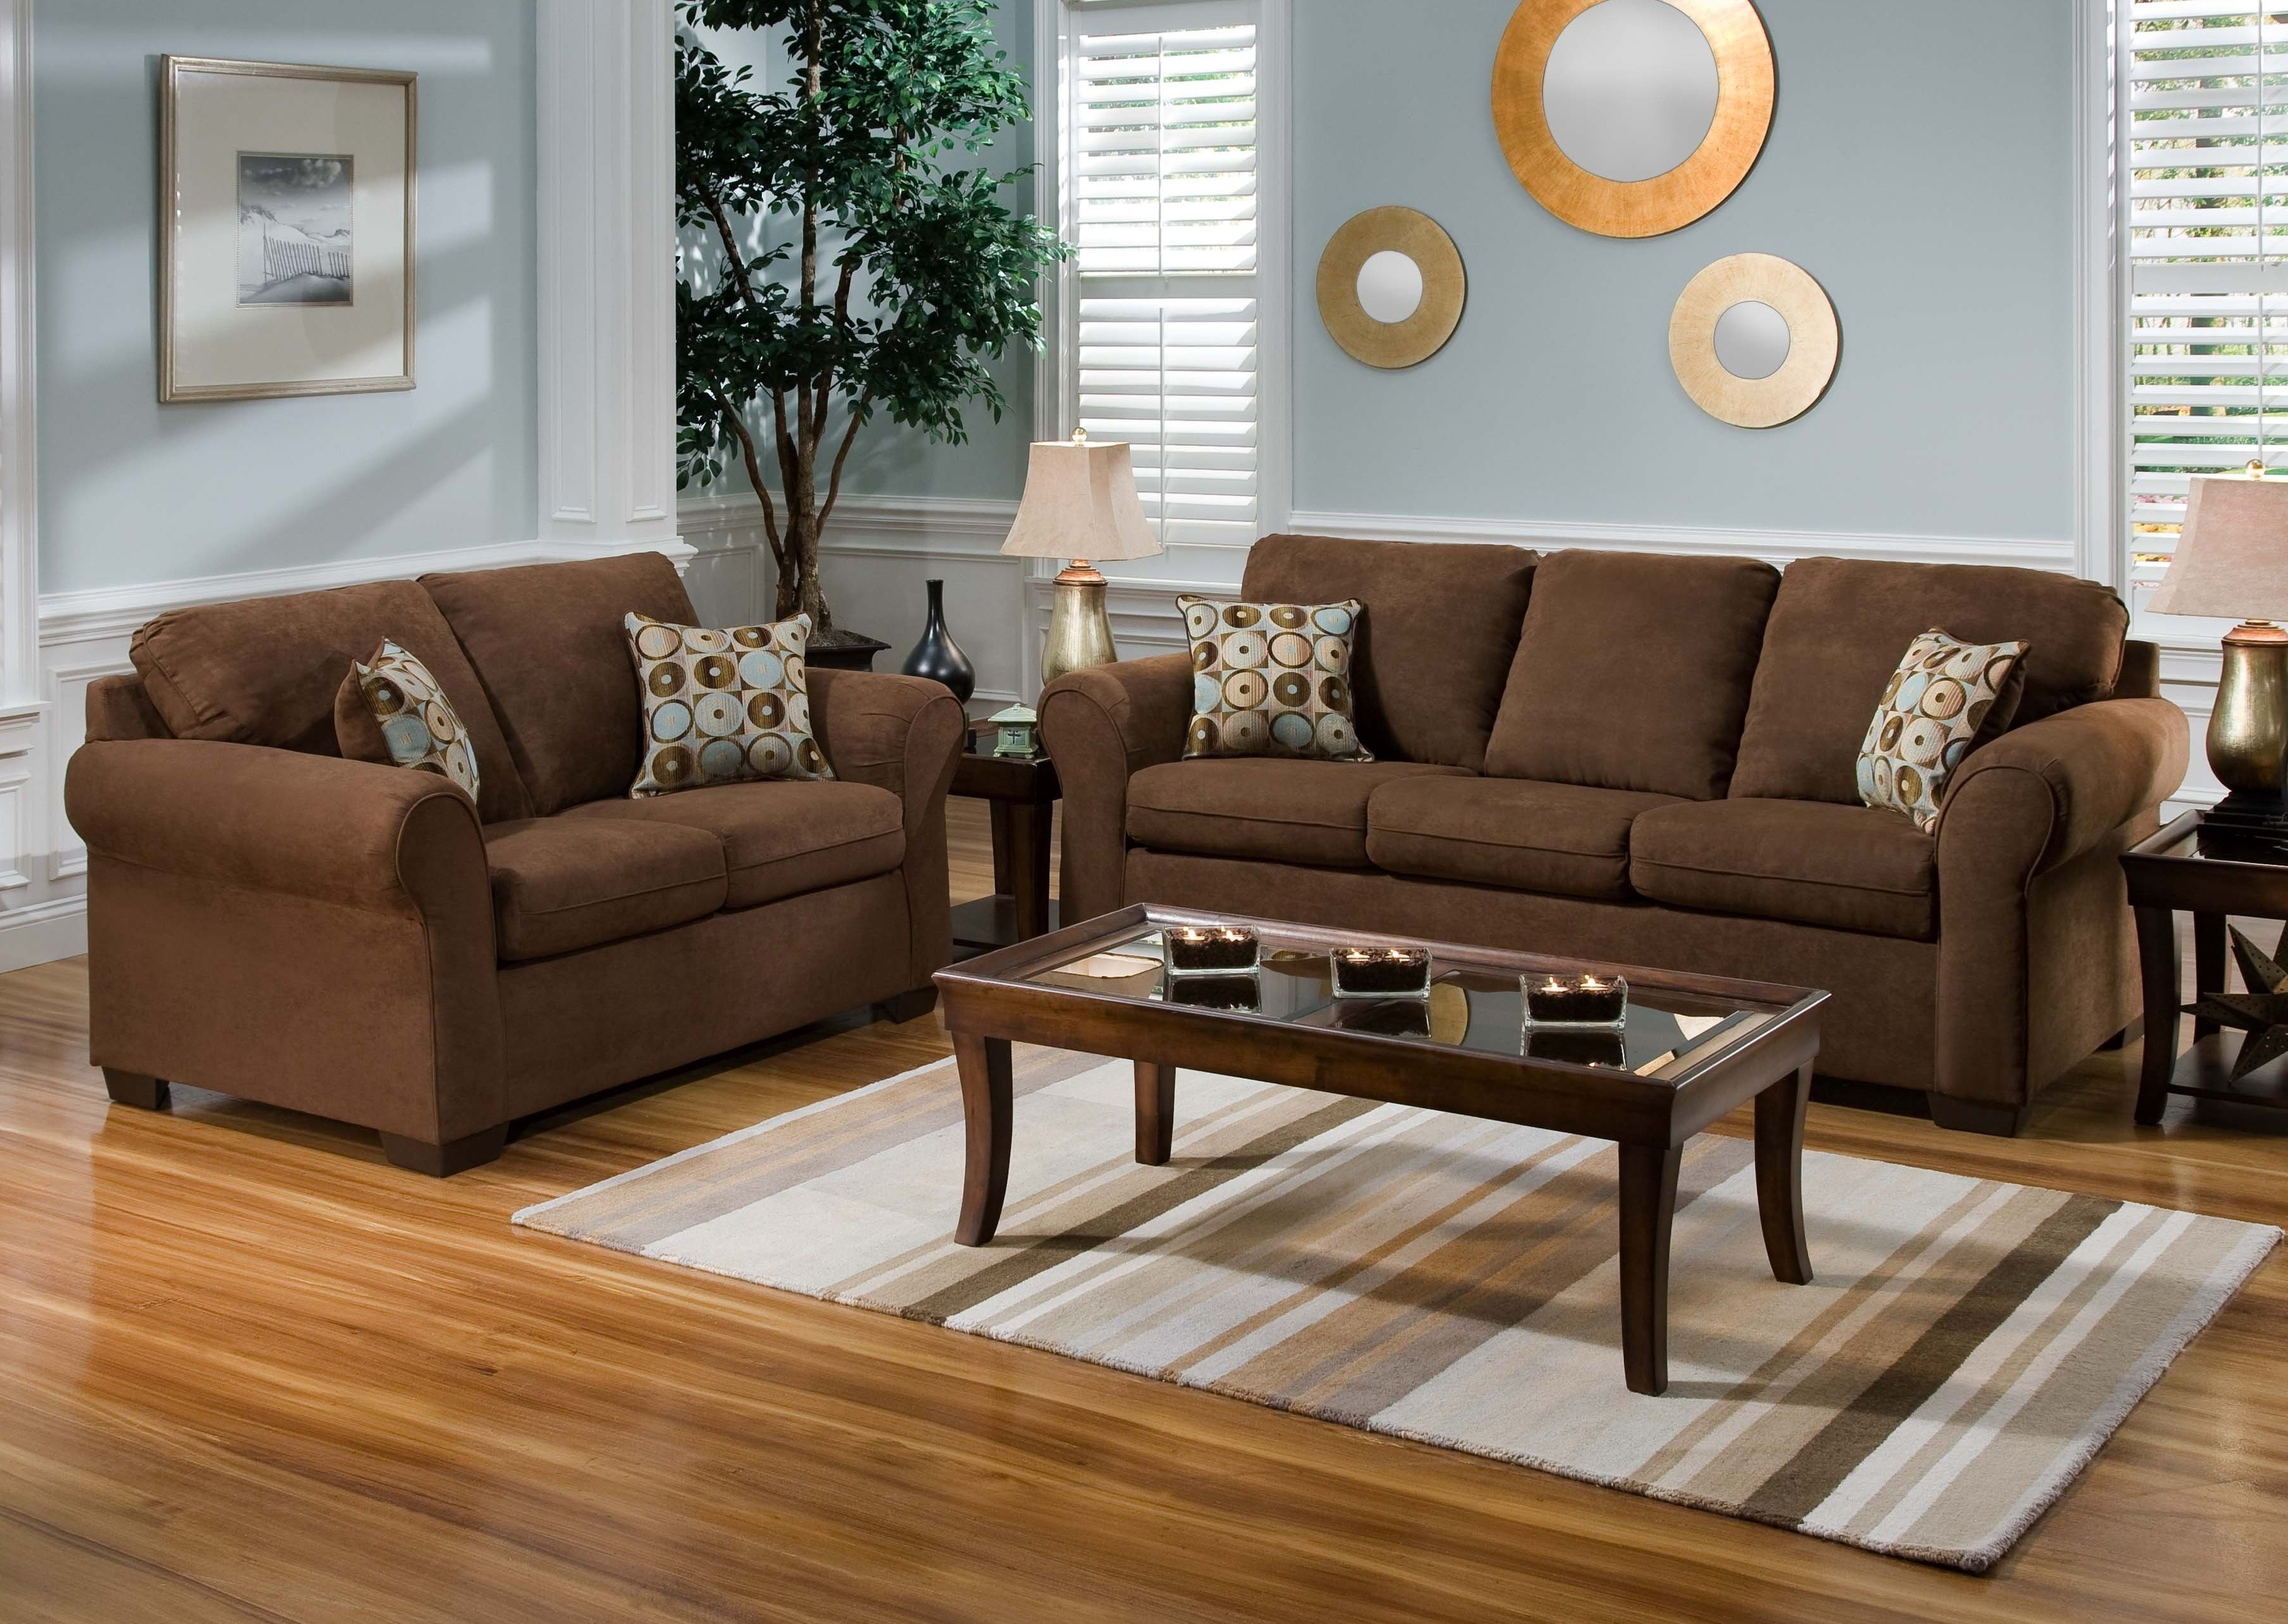 Wood Flooring Color To Complement Brown Leather And Oak Furniture Regarding Widely Used Brown Sofa Chairs (View 2 of 15)